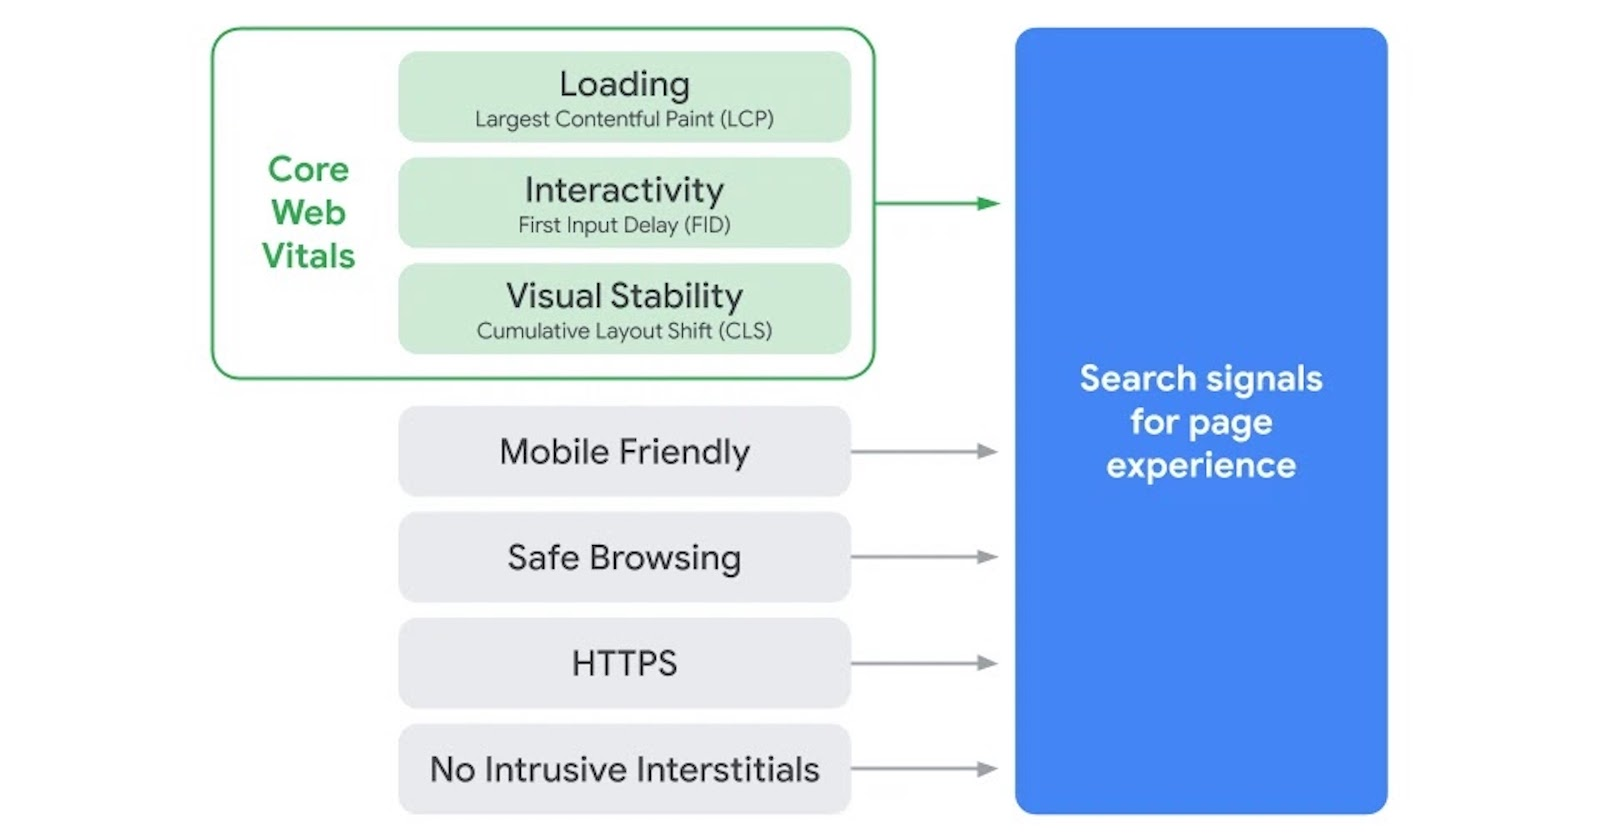 Google's Core Web Vitals to Become Ranking Signals - Search Engine Journal